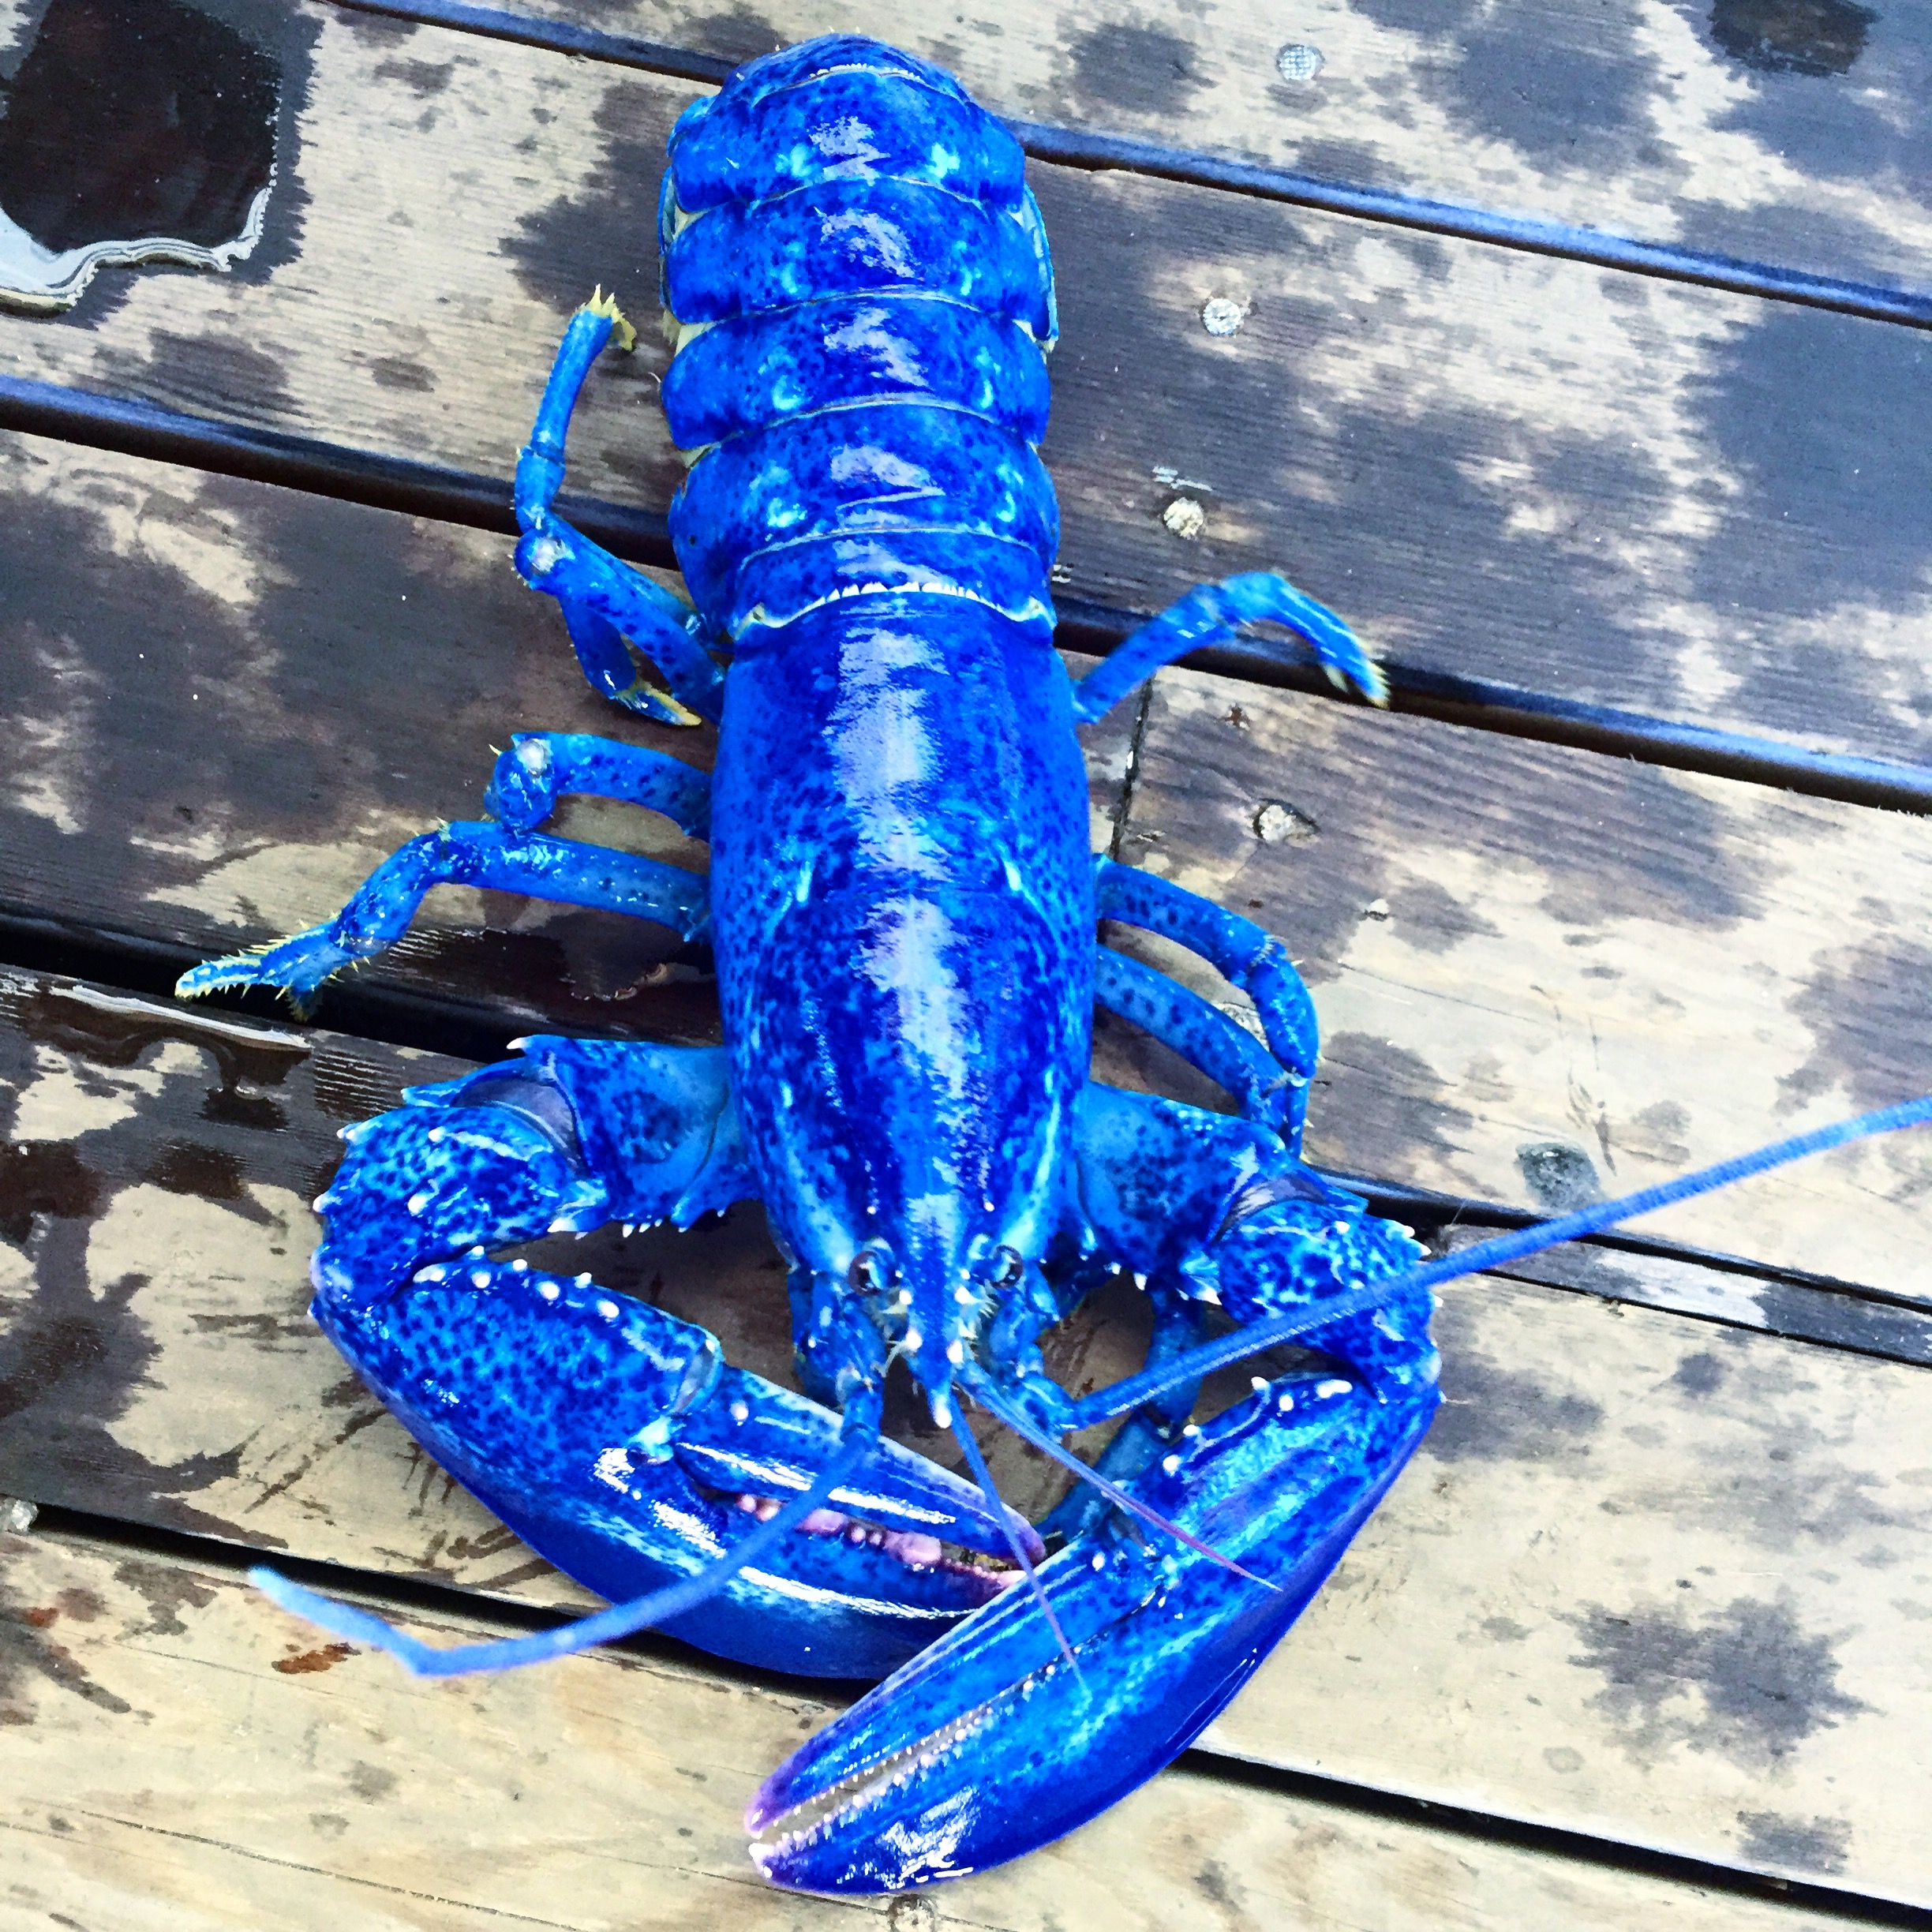 A rare blue lobster... NO FILTER!